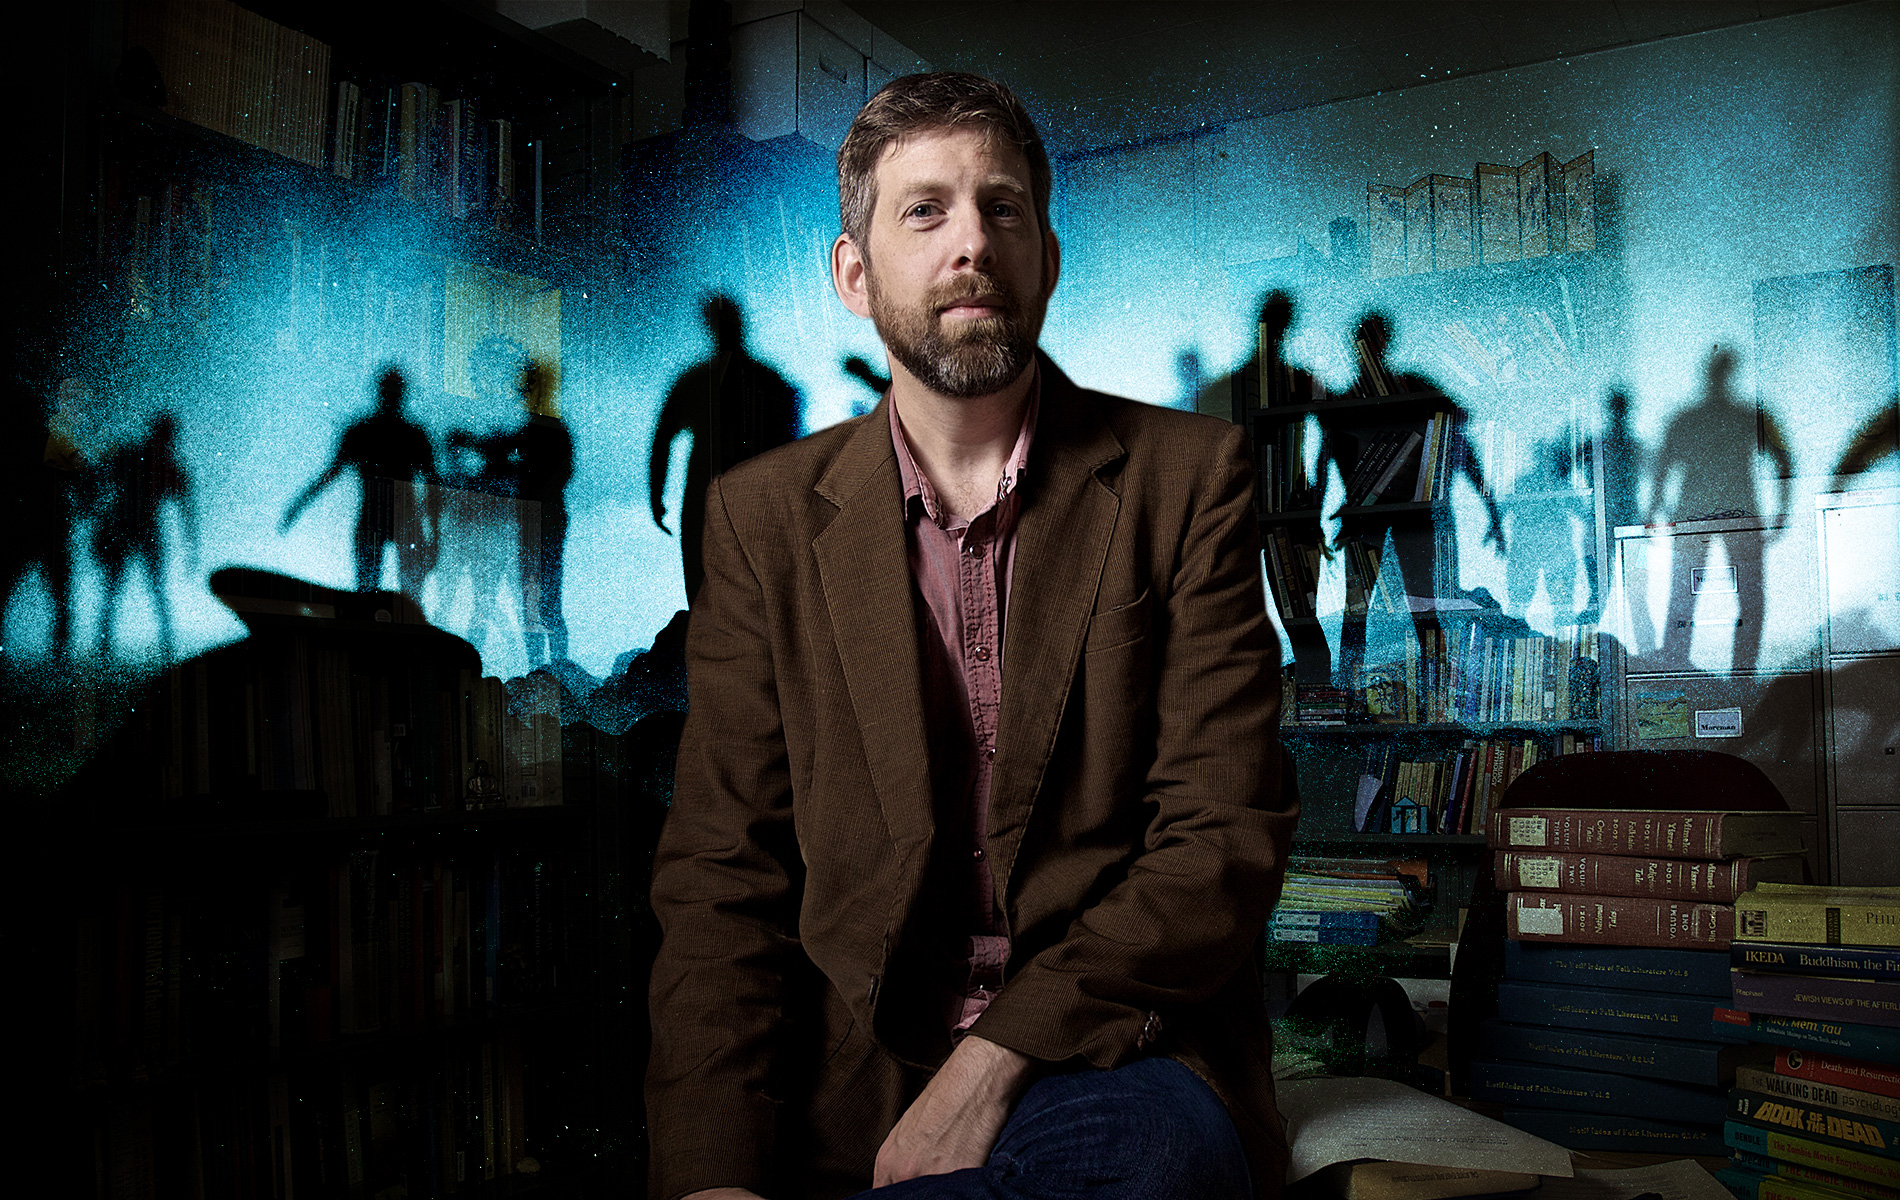 Professor Christopher Moreman sits with zombies silhouetted in the background